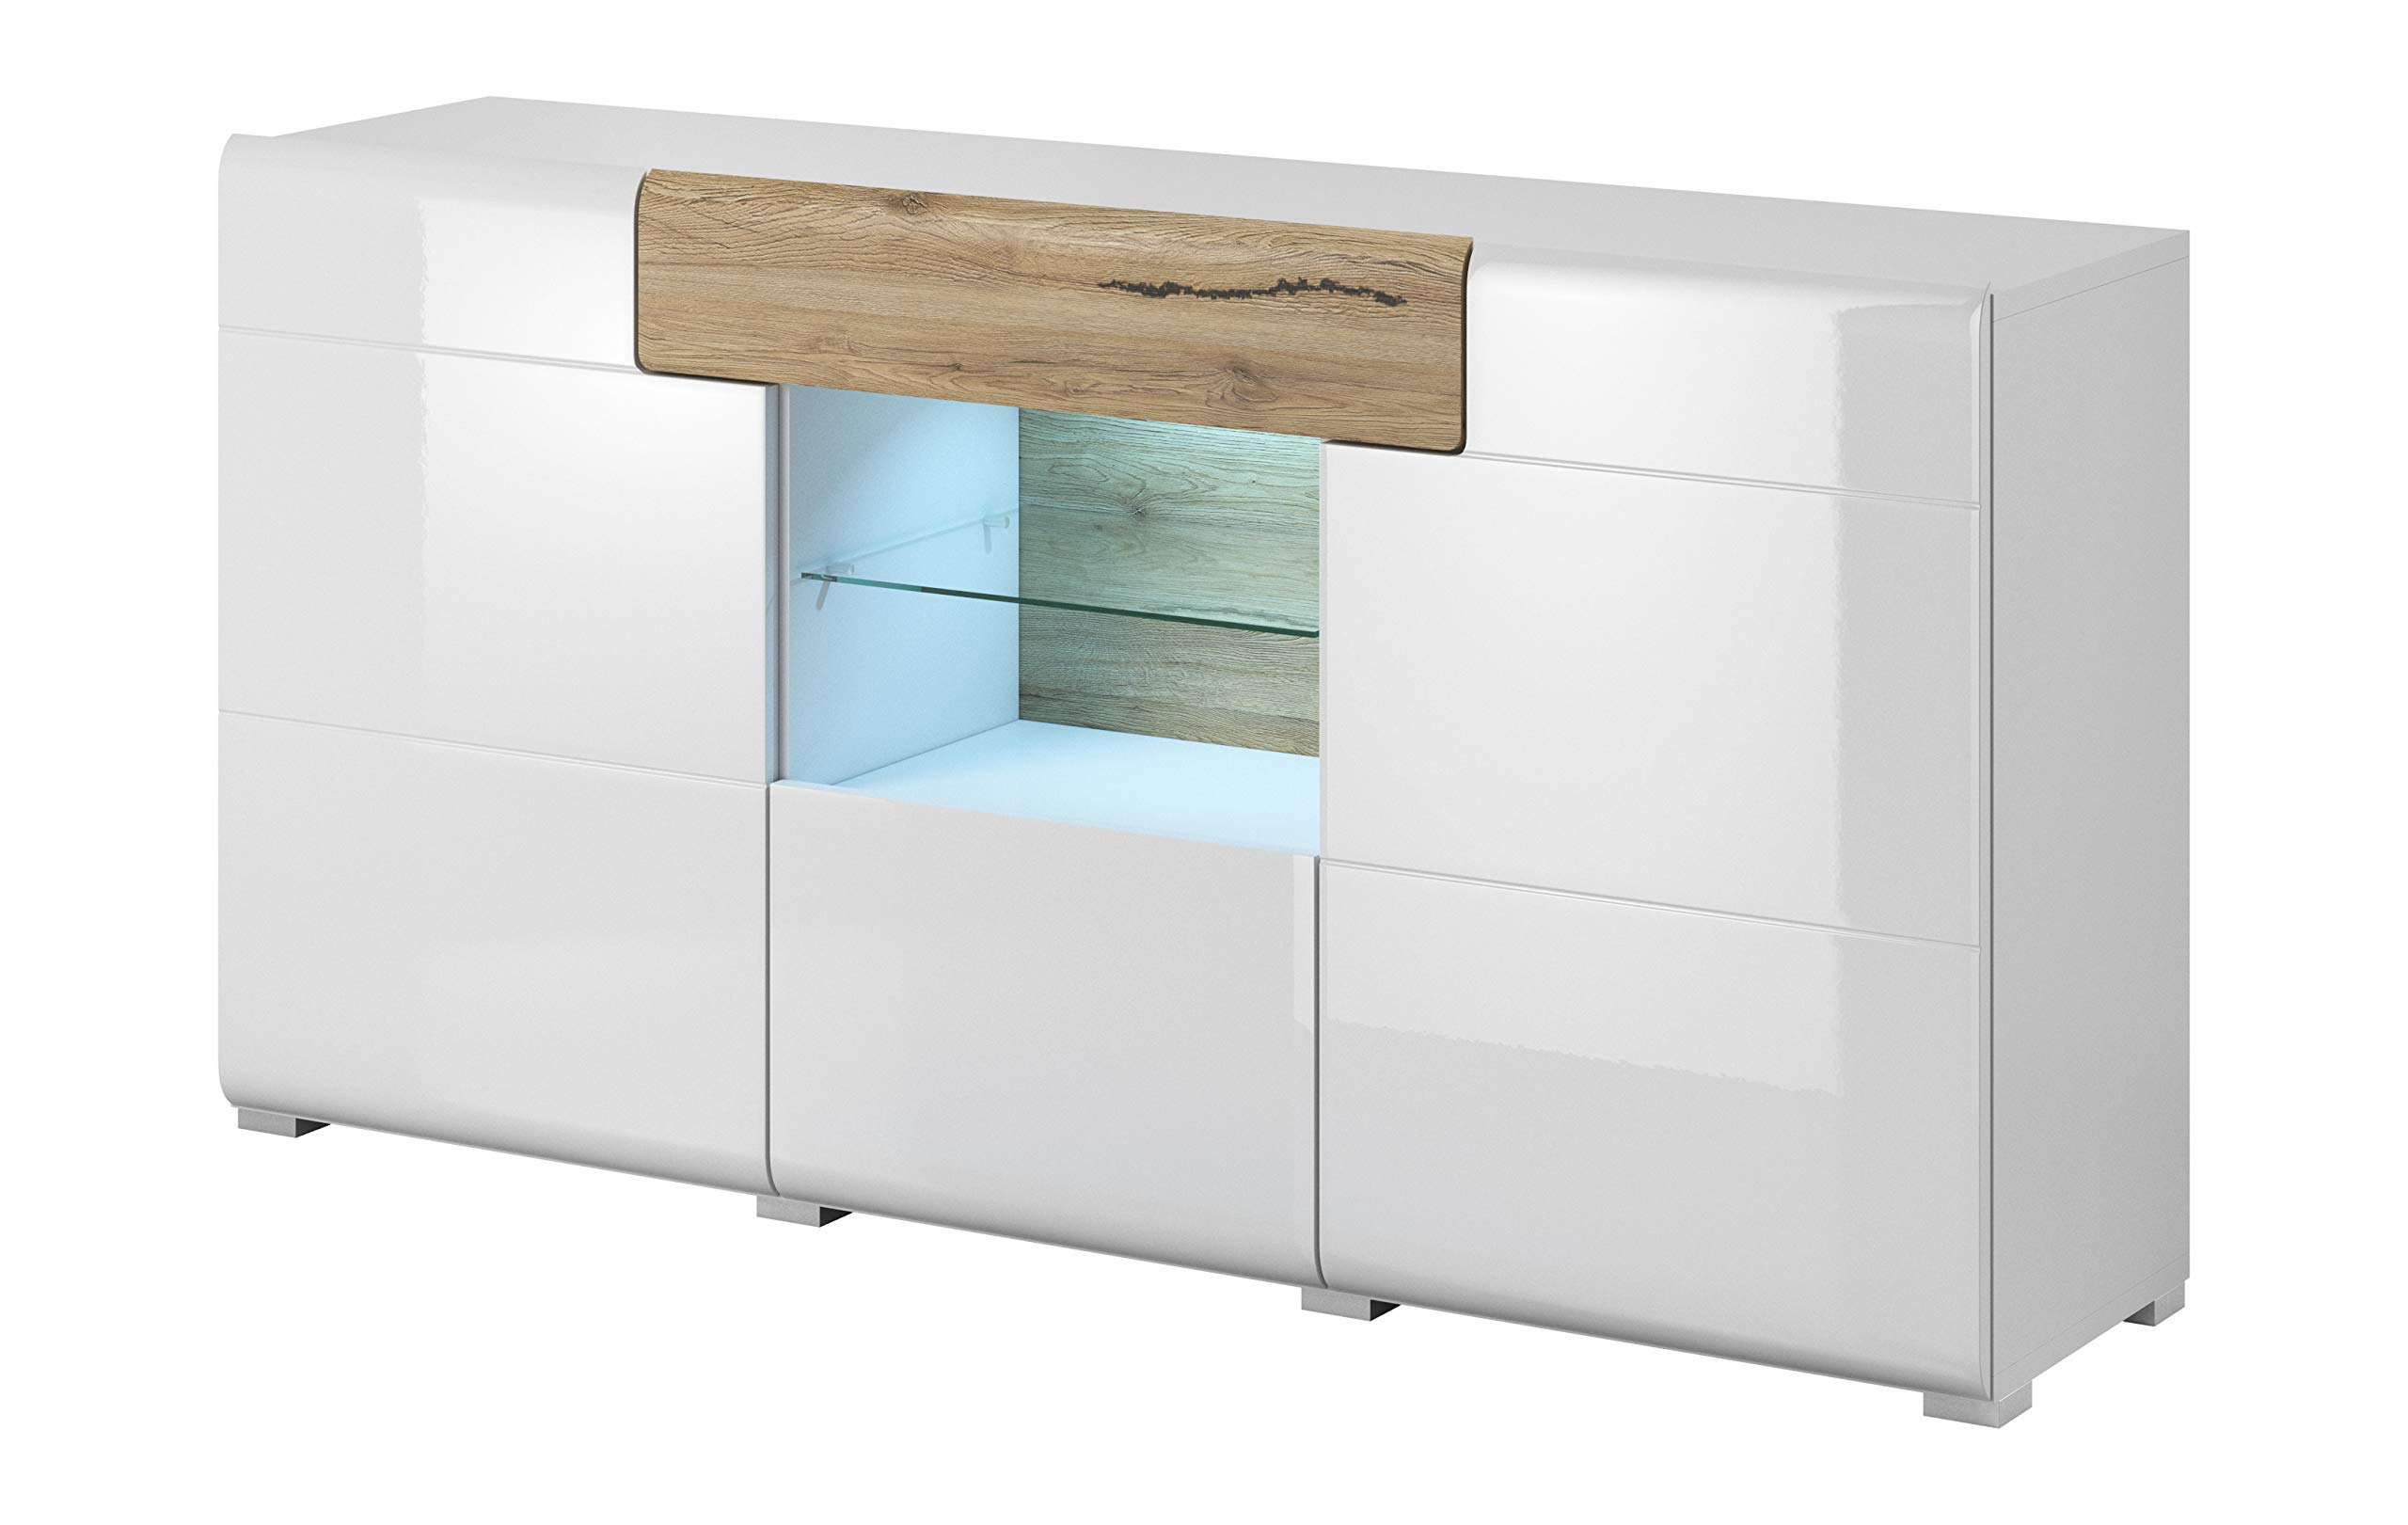 Toledo Collection Sideboard 26 – Elegant Sideboard in White Glossy Color with San Remo Oak Elements – 3 Doors and1 Drawer Plus Central Glass Shelf with LED Lights - This glassed sideboard has 3 doors (with 1 shelf behind the lateral ones), 1 central drawer with San Remo oak finish and 1 Glassed central shelf with LED lights High quality materials and finish. Made of durable high quality laminated board, that is moisture and heat resistant, as well as scratch resistant thanks to the special membrane foil that covers external surfaces. The main features of this sideboard are: The doors and the drawer incorporate aspecial mechanismto assure a soft andsilent closing, and the drawer additionally has a quasi full opening function, to enable better access to all your things, and the central shelf with tempered glass shelf is lit with LED lights to offer a modern look - sideboards-buffets, kitchen-dining-room-furniture, kitchen-dining-room - 71H3w4Gqy2L -